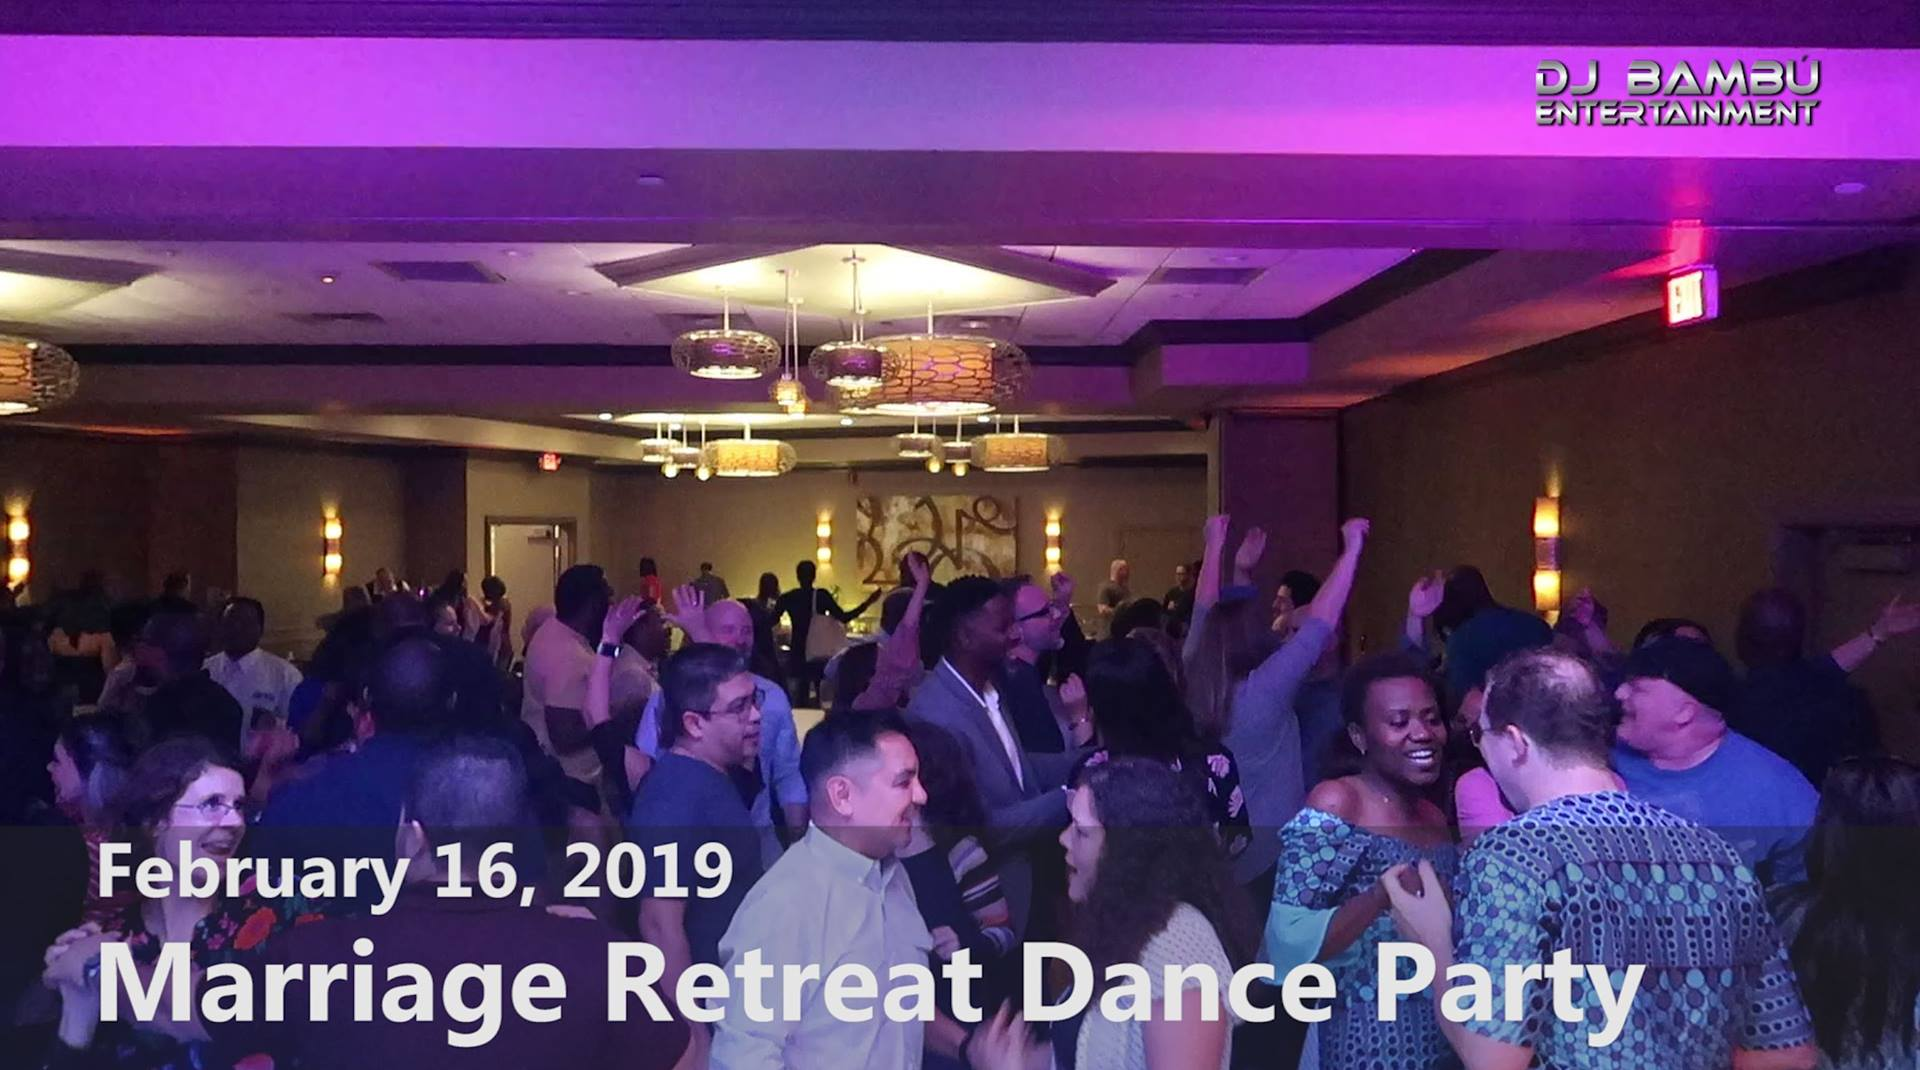 Marriage Retreat Dance Party (02/16/19)